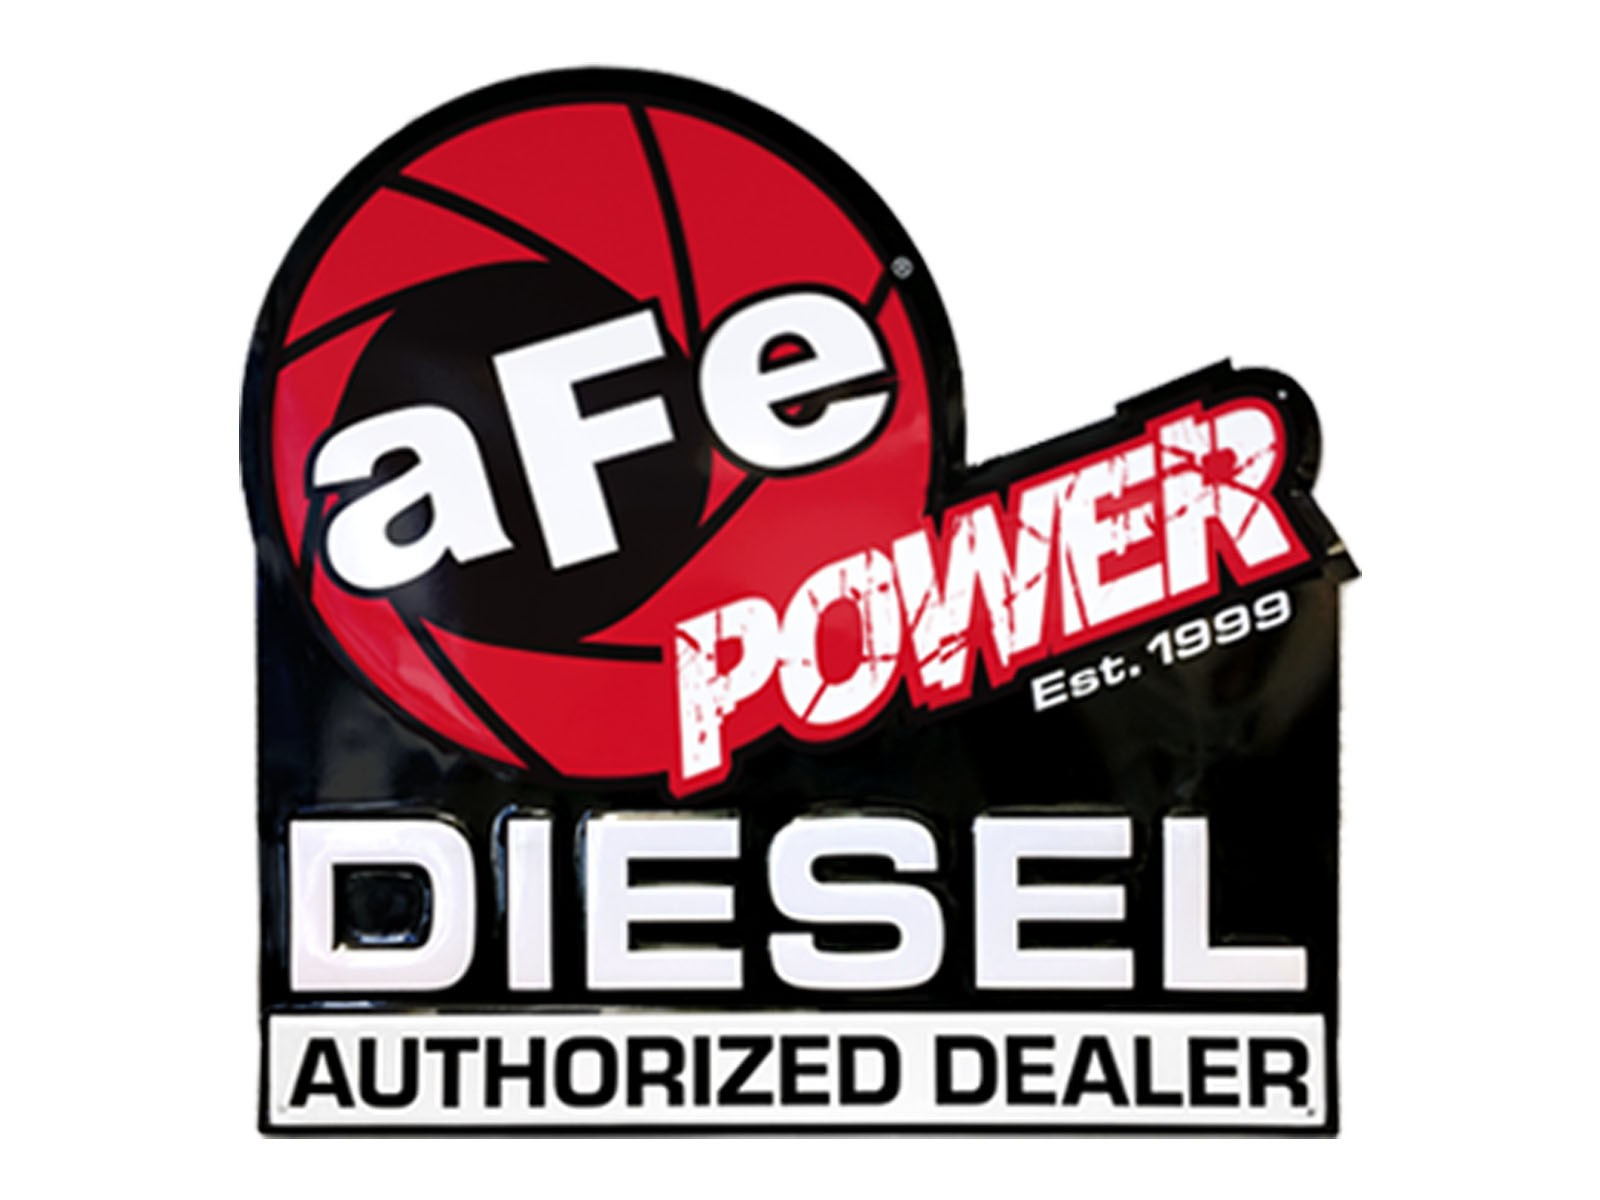 aFe POWER 40-10193 aFe POWER Authorized Dealer Sign